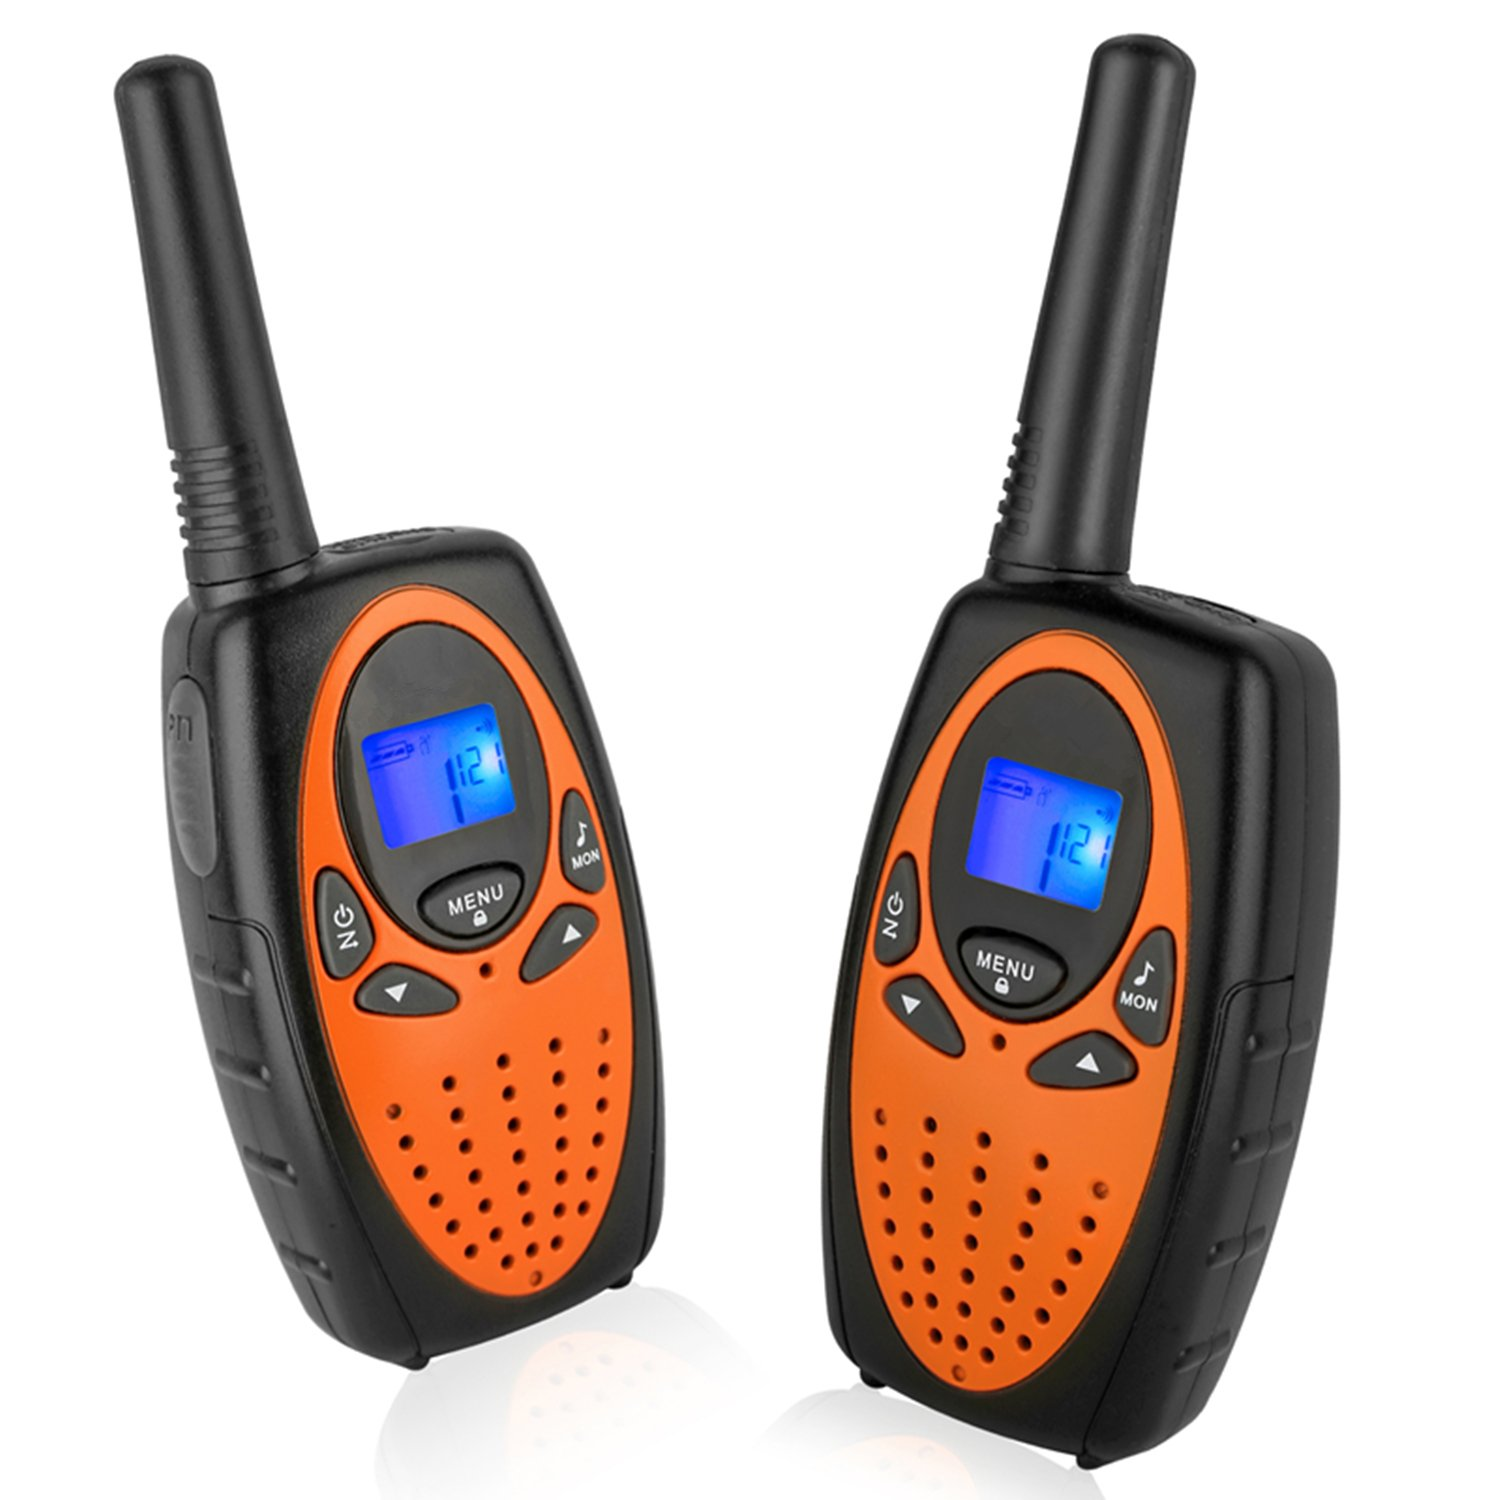 Fremragende Amazon.com: Two Way Radios for Adults, Topsung M880 FRS Walkie XP06